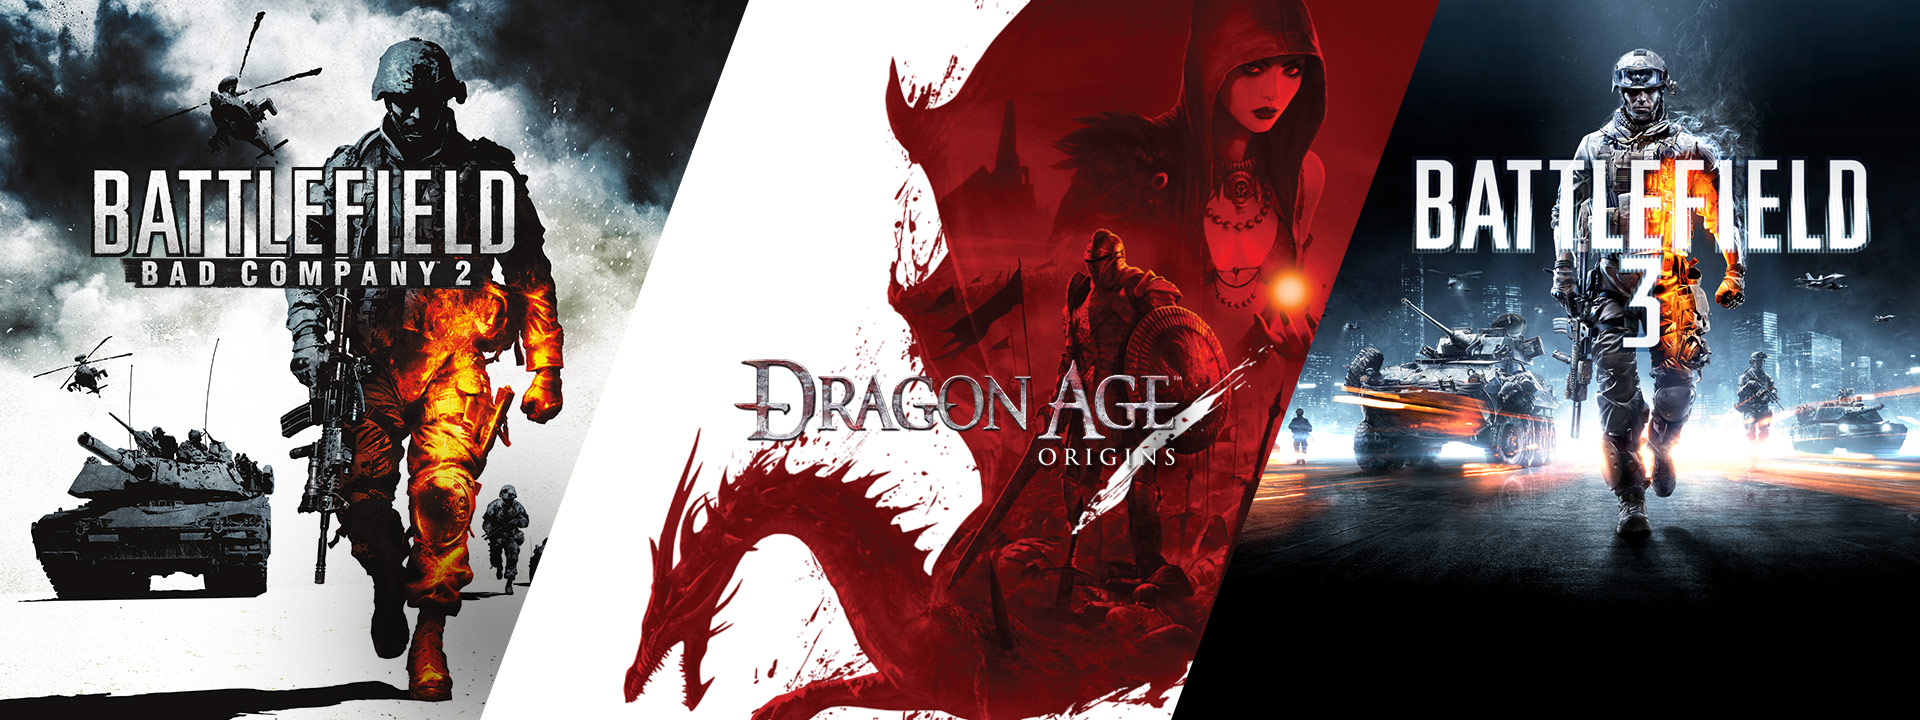 Dragon Age playable on Xbox One via back compat